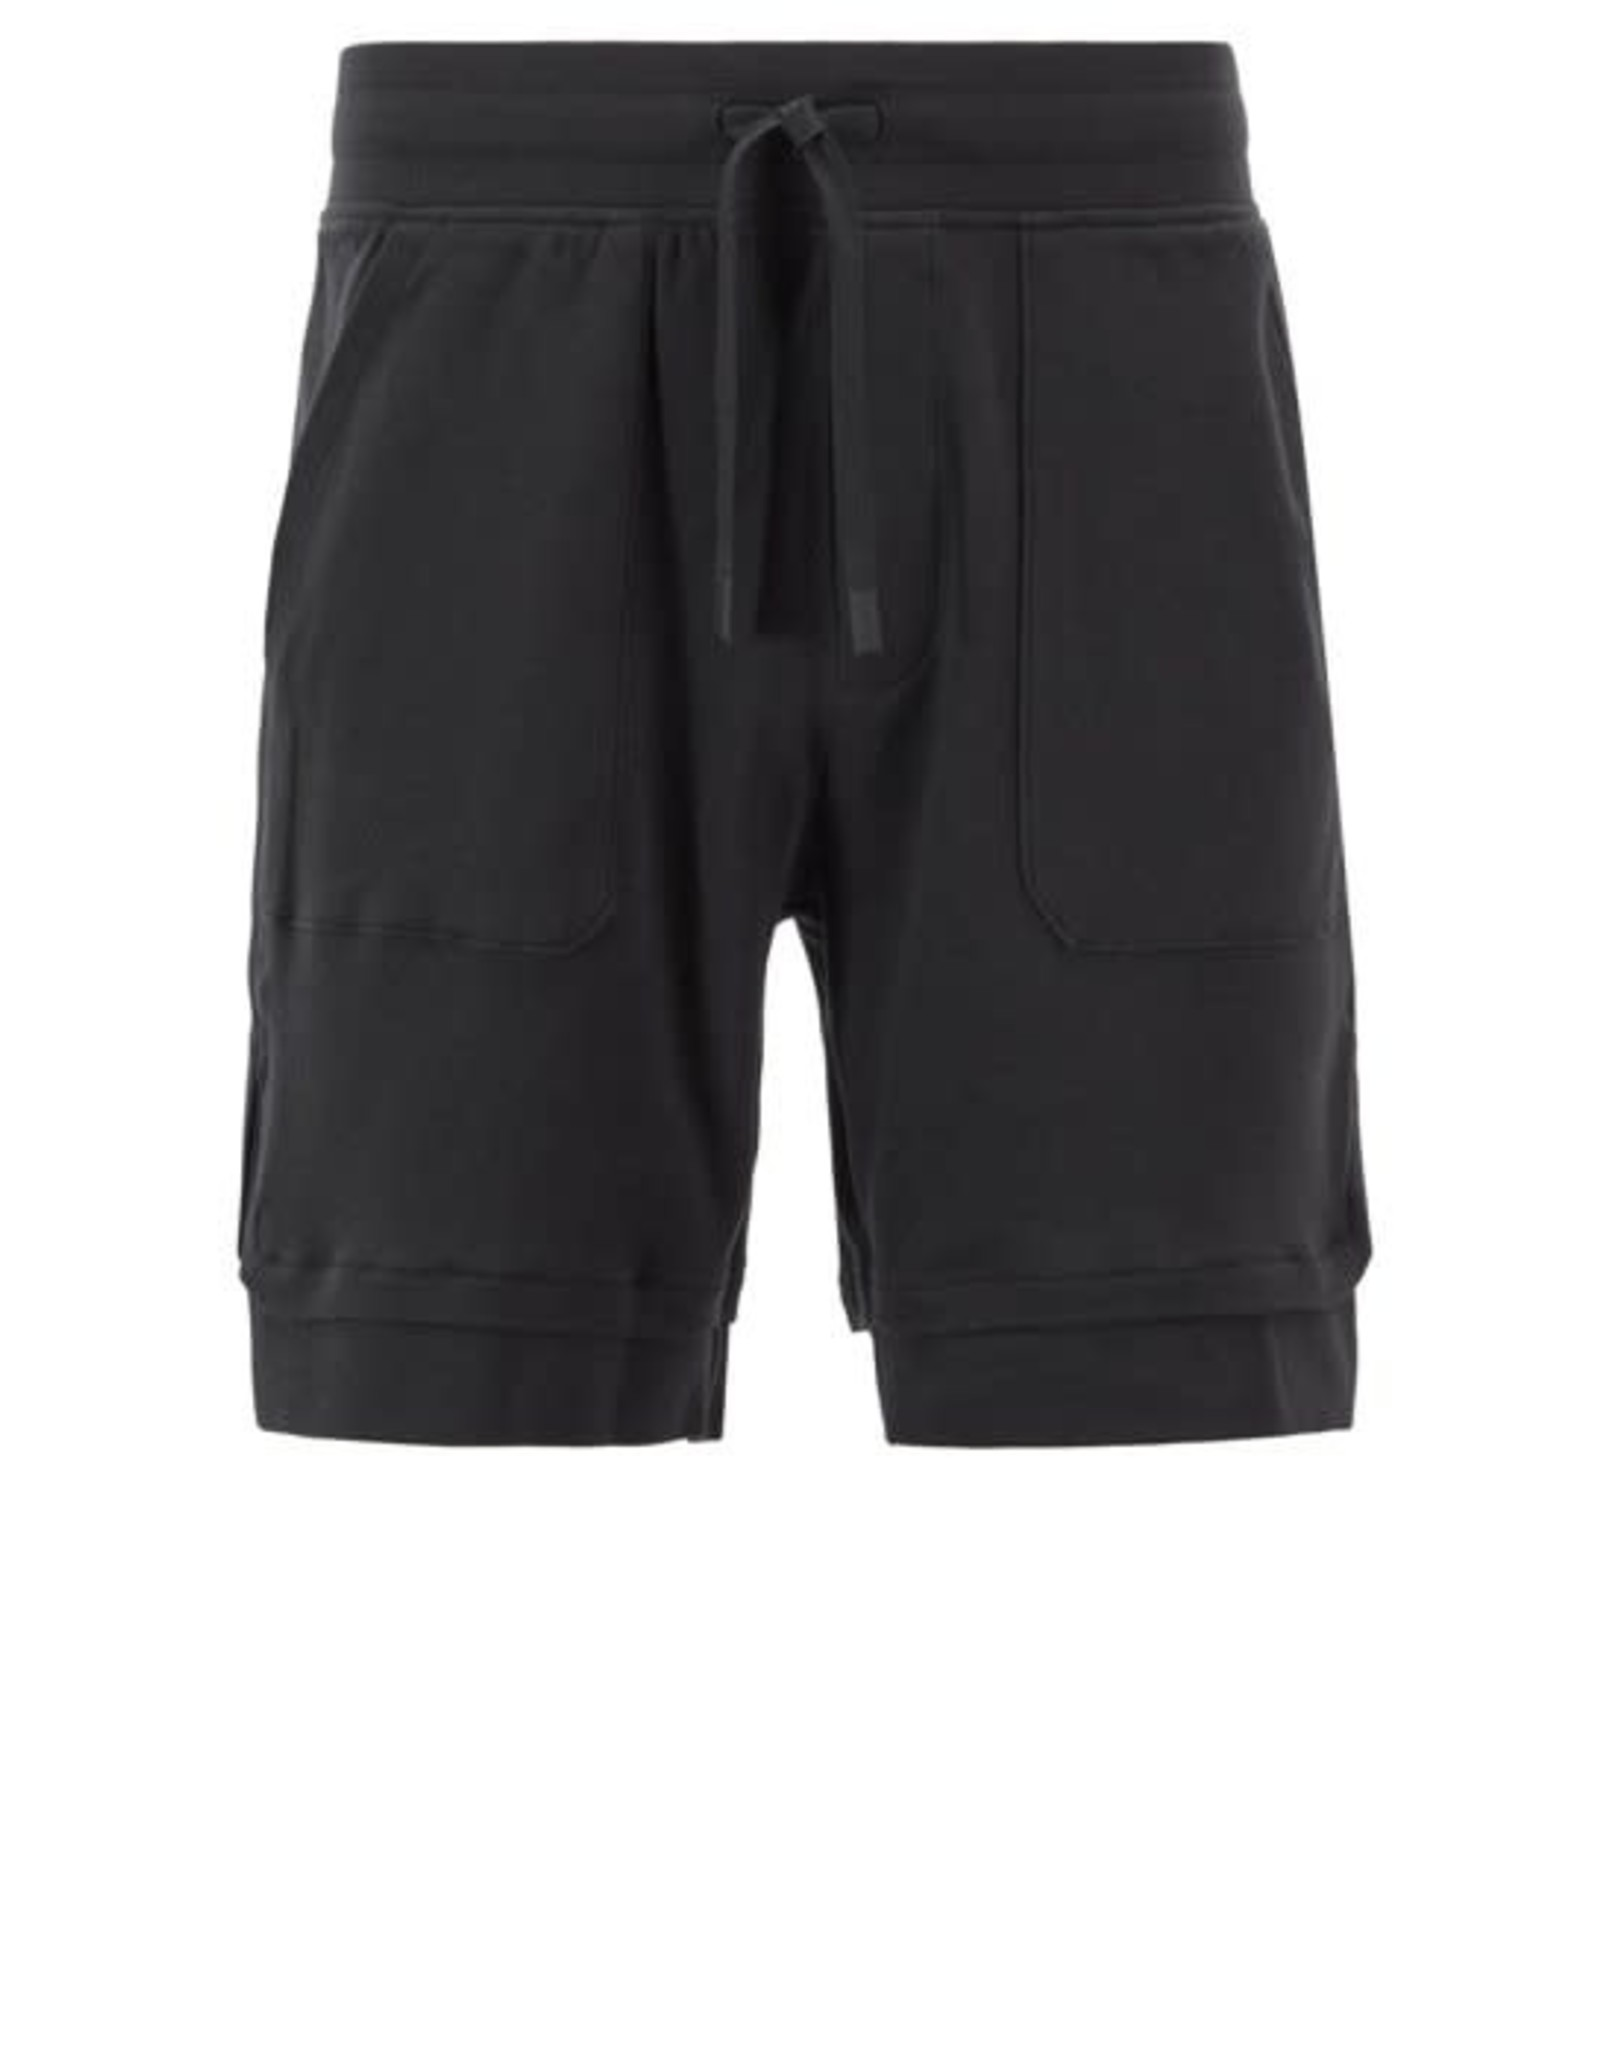 BOSS LOUNGEWEAR BOSS LOUNGEWEAR FASHION SHORTS S19